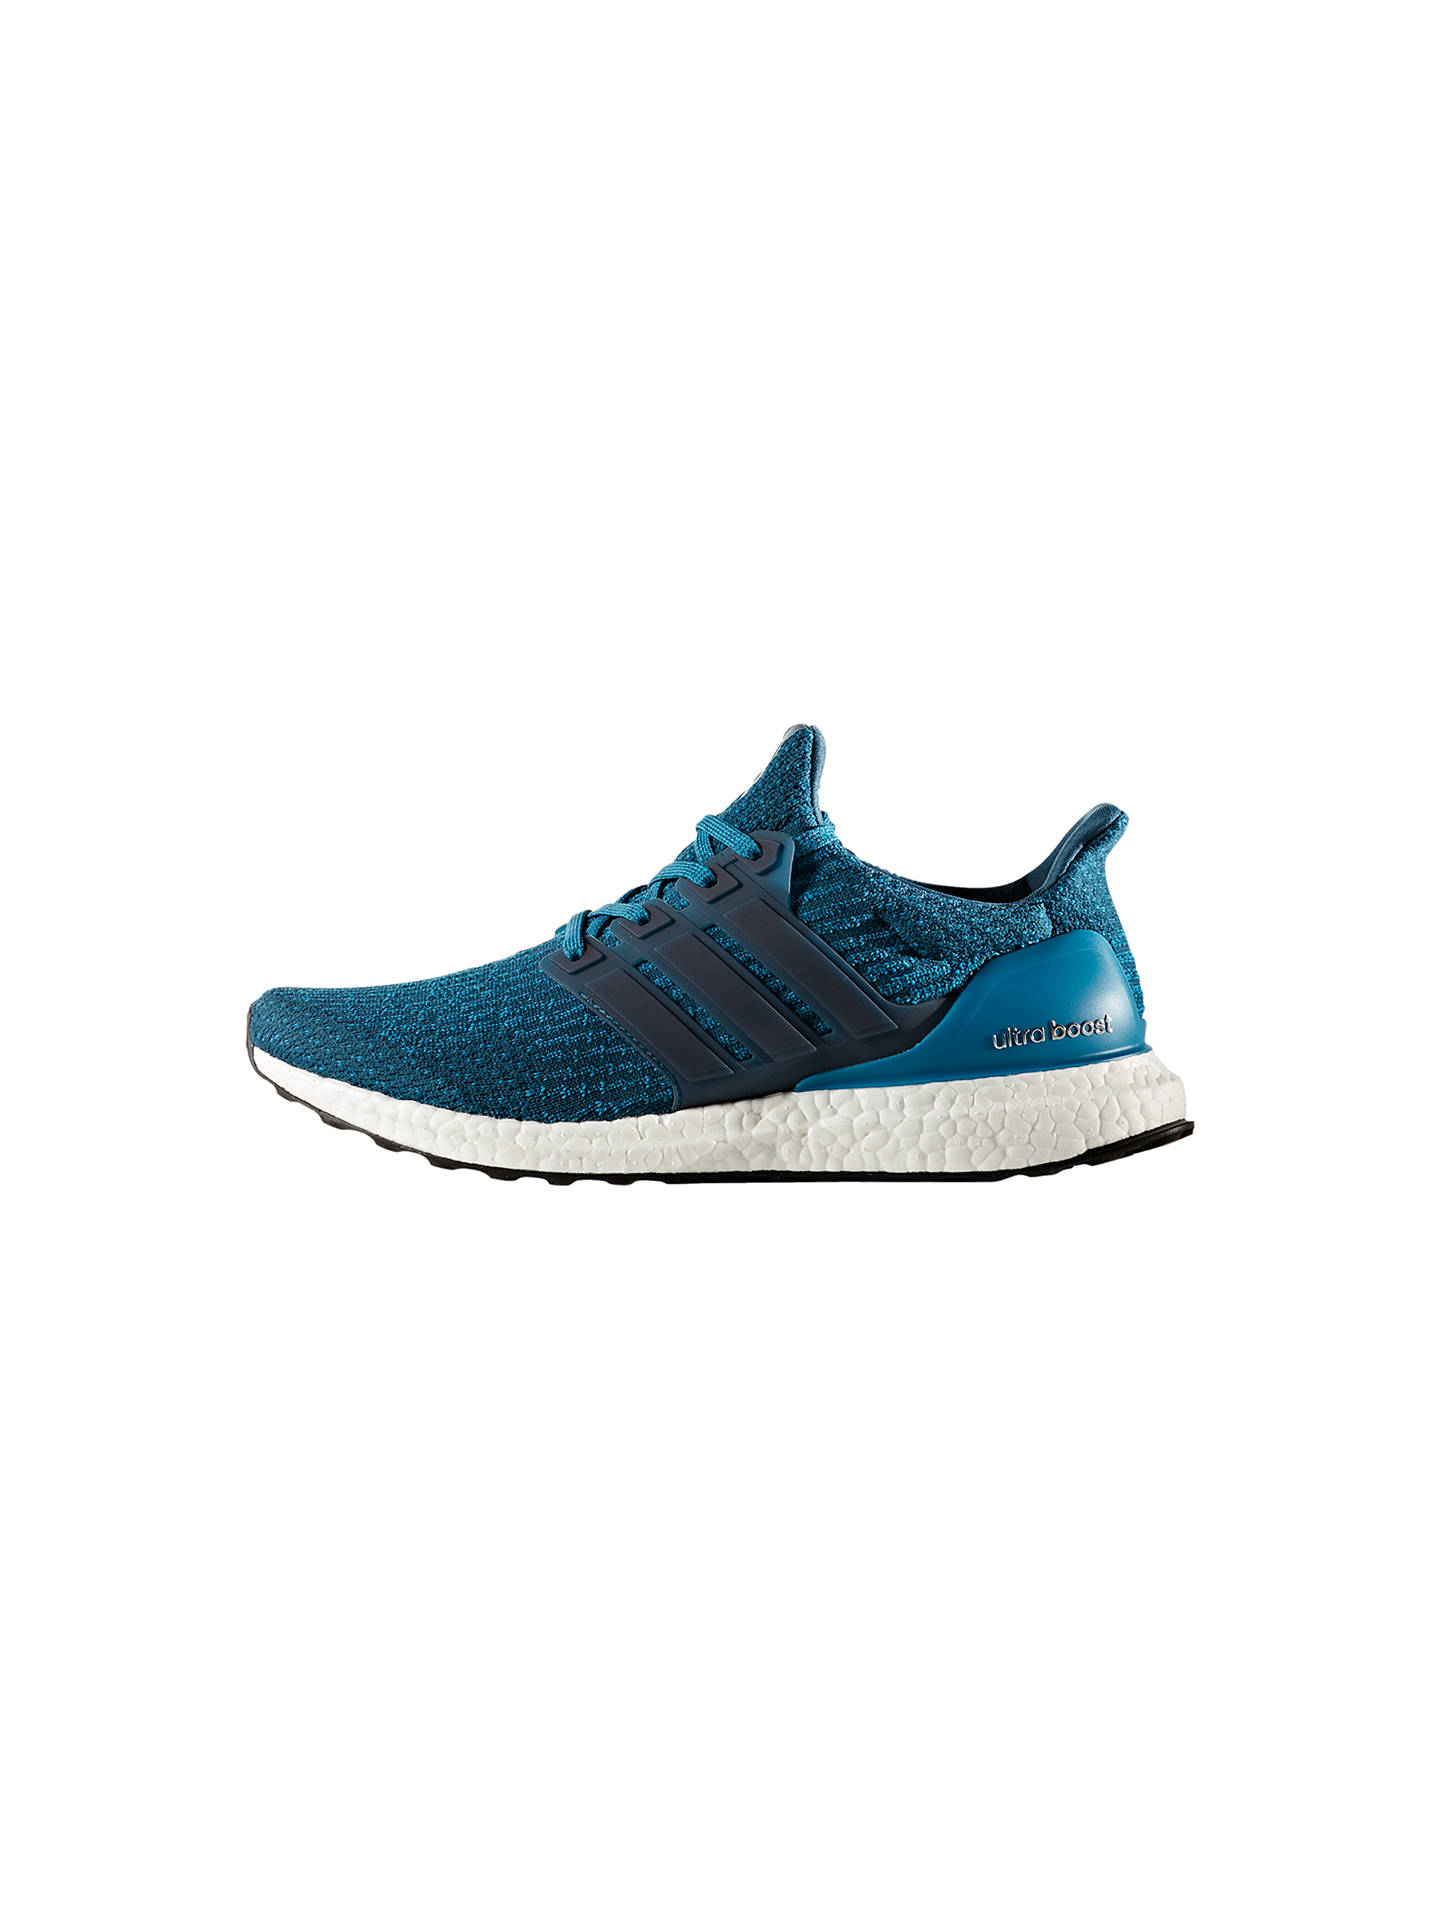 5813fc63d80c9 sale buyadidas ultra boost mens running shoes navy 7 online at johnlewis.  120df e7457